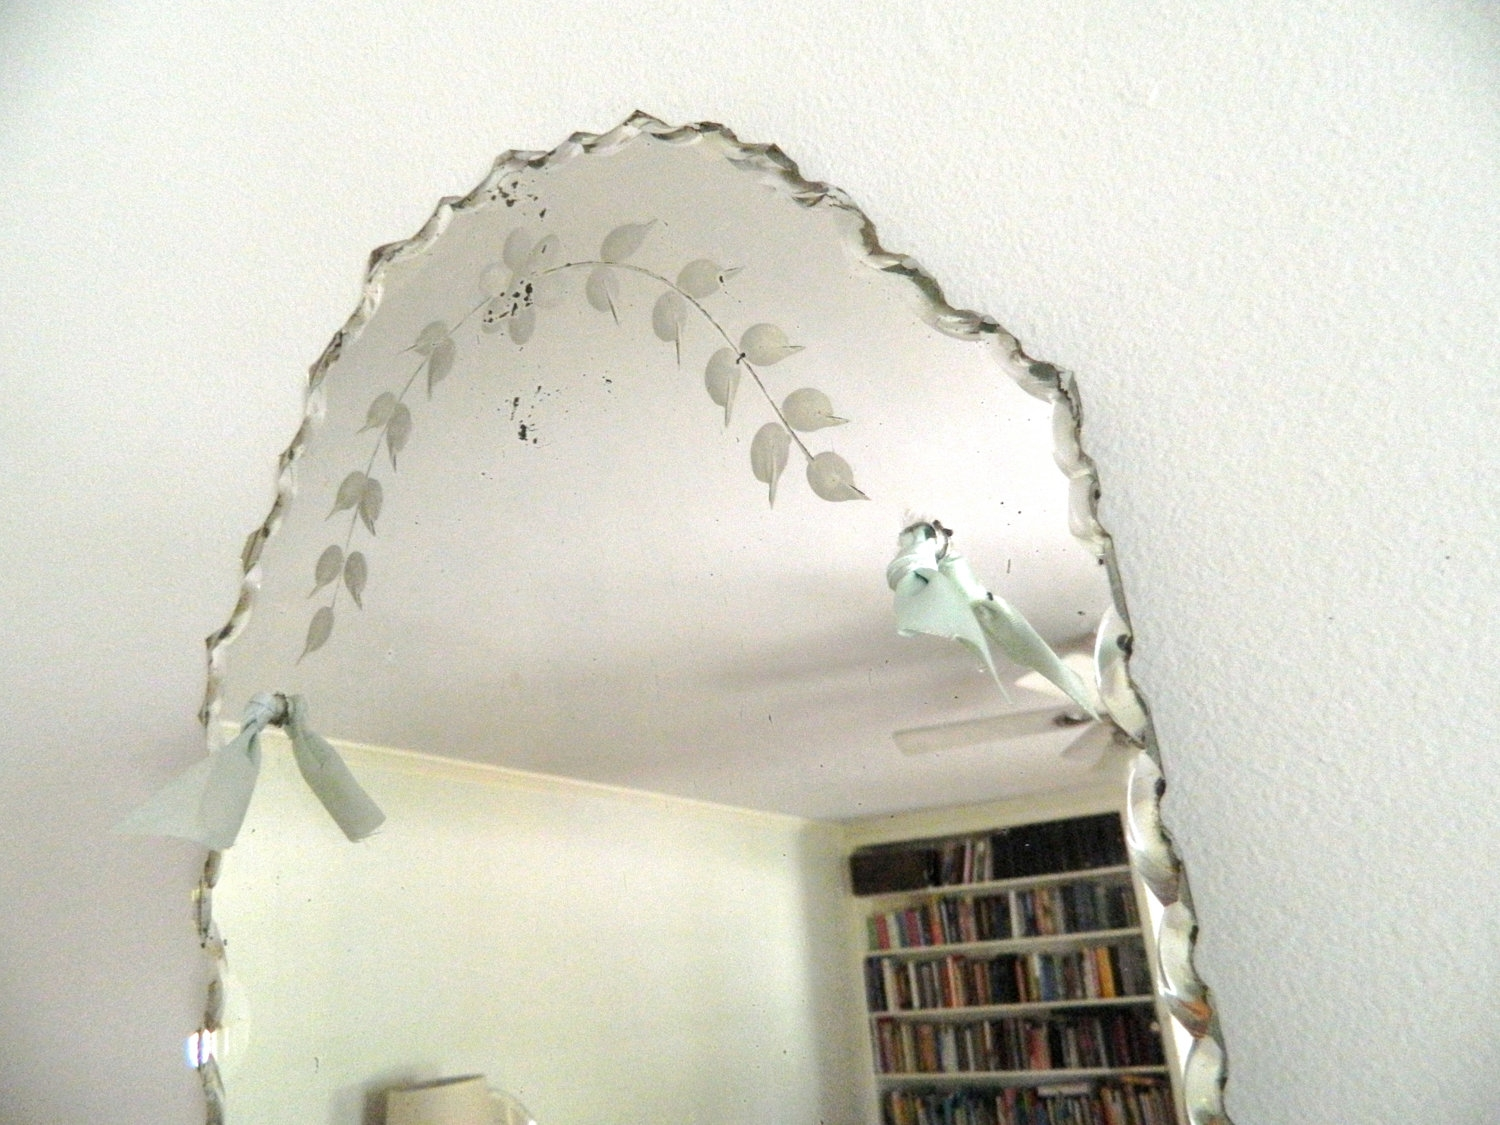 Vintage Etched Beveled Mirror Frameless Throughout Antique Frameless Mirrors (View 10 of 15)